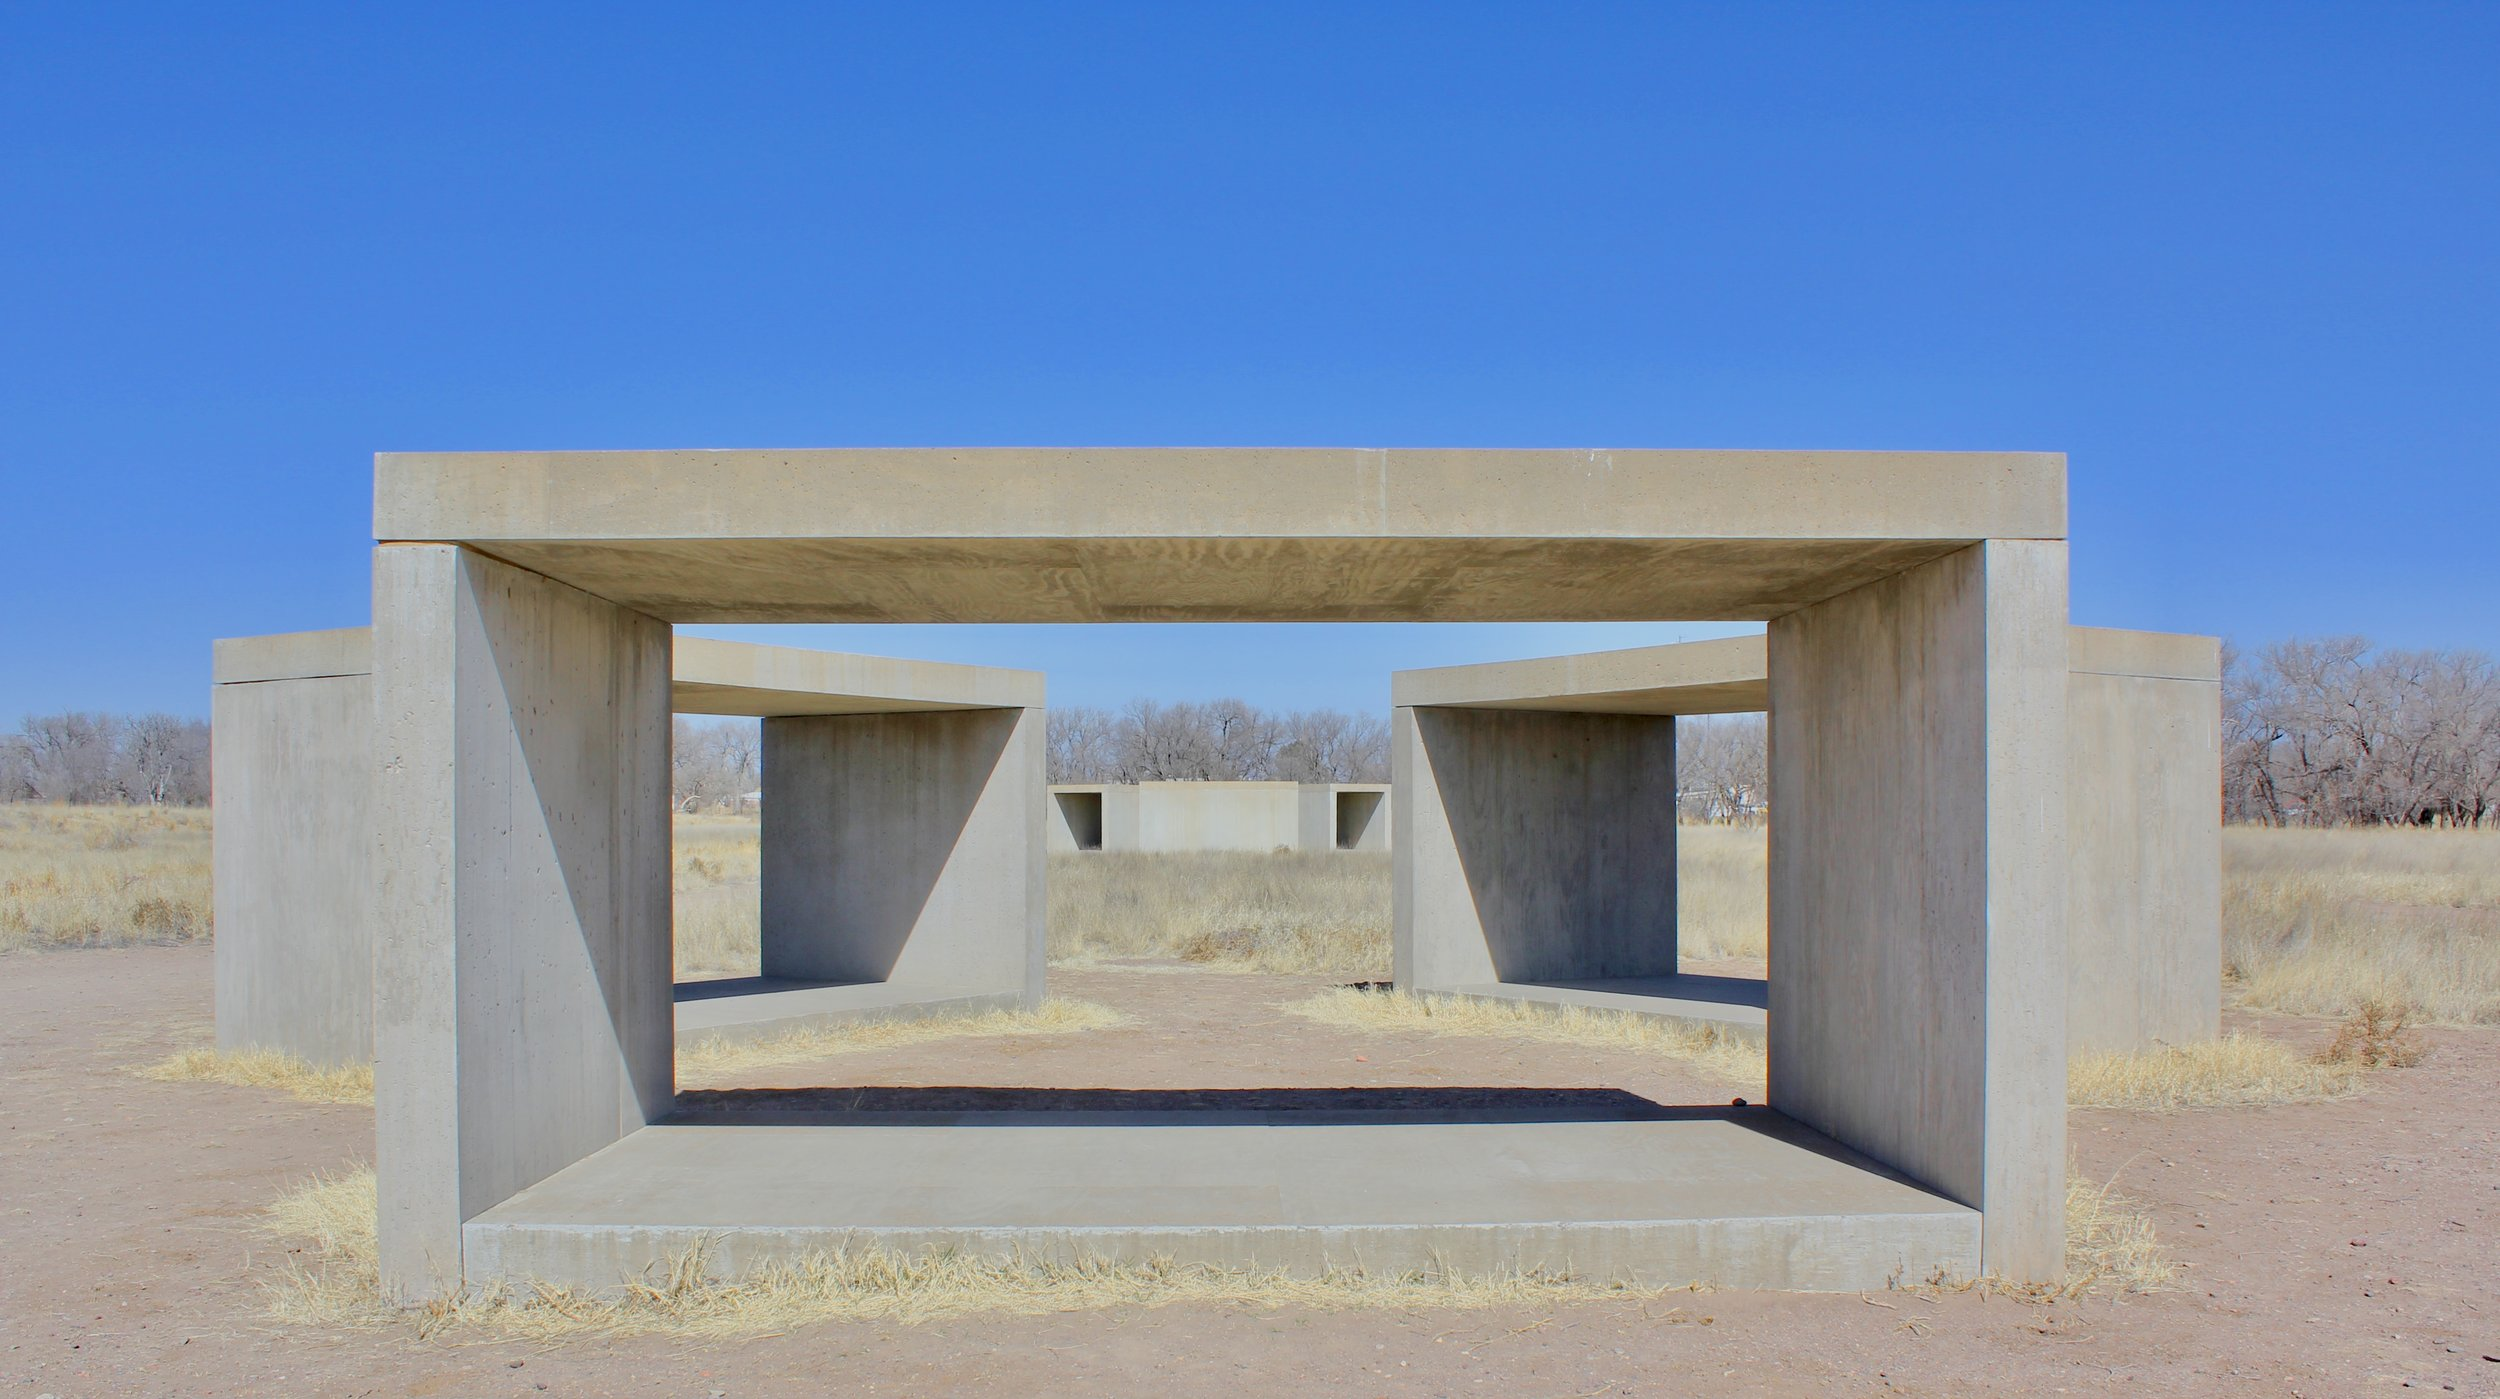 The fifteen concrete works by Donald Judd - Chinati Foundation